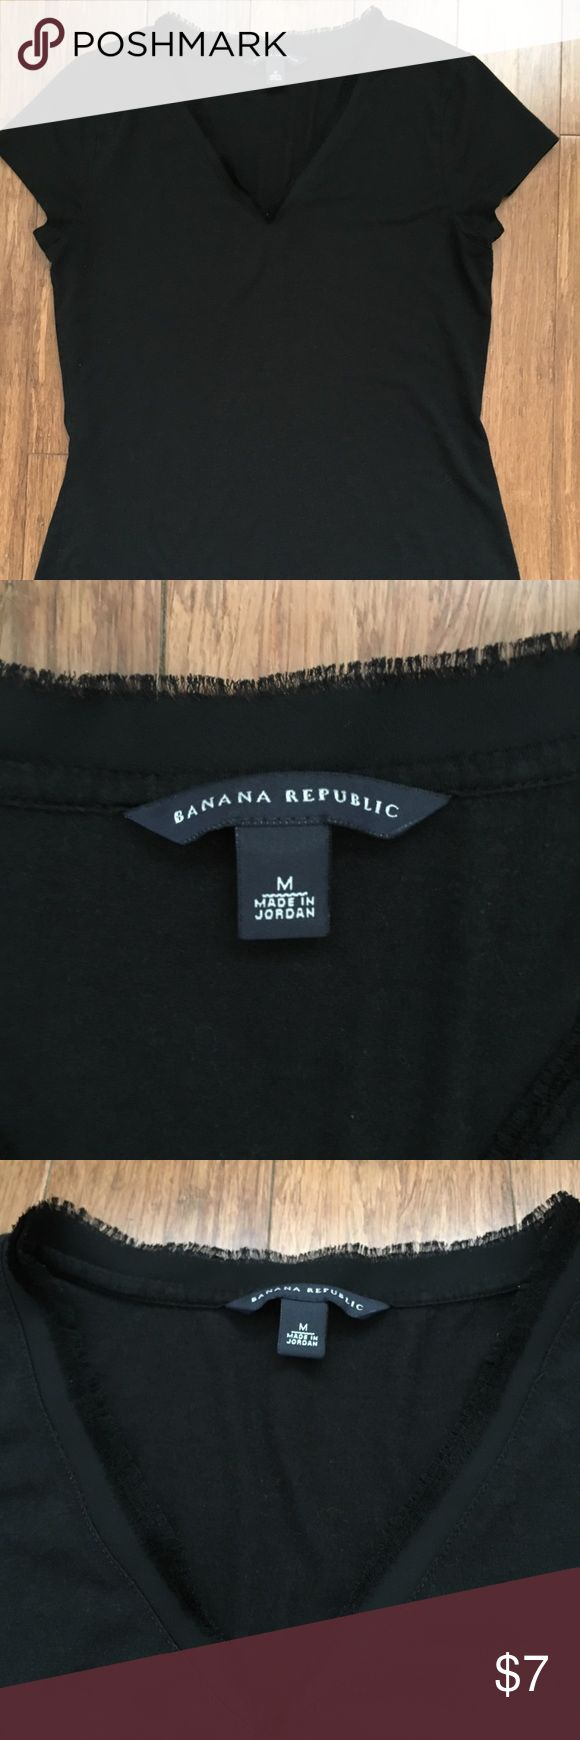 Banana Republic Black T-shirt Black fitted V-neck top with frayed lace detail around neckline, some signs of wear, no damage. Freshly washed, ready to be packed and shipped the day of sale. Banana Republic Tops Tees - Short Sleeve